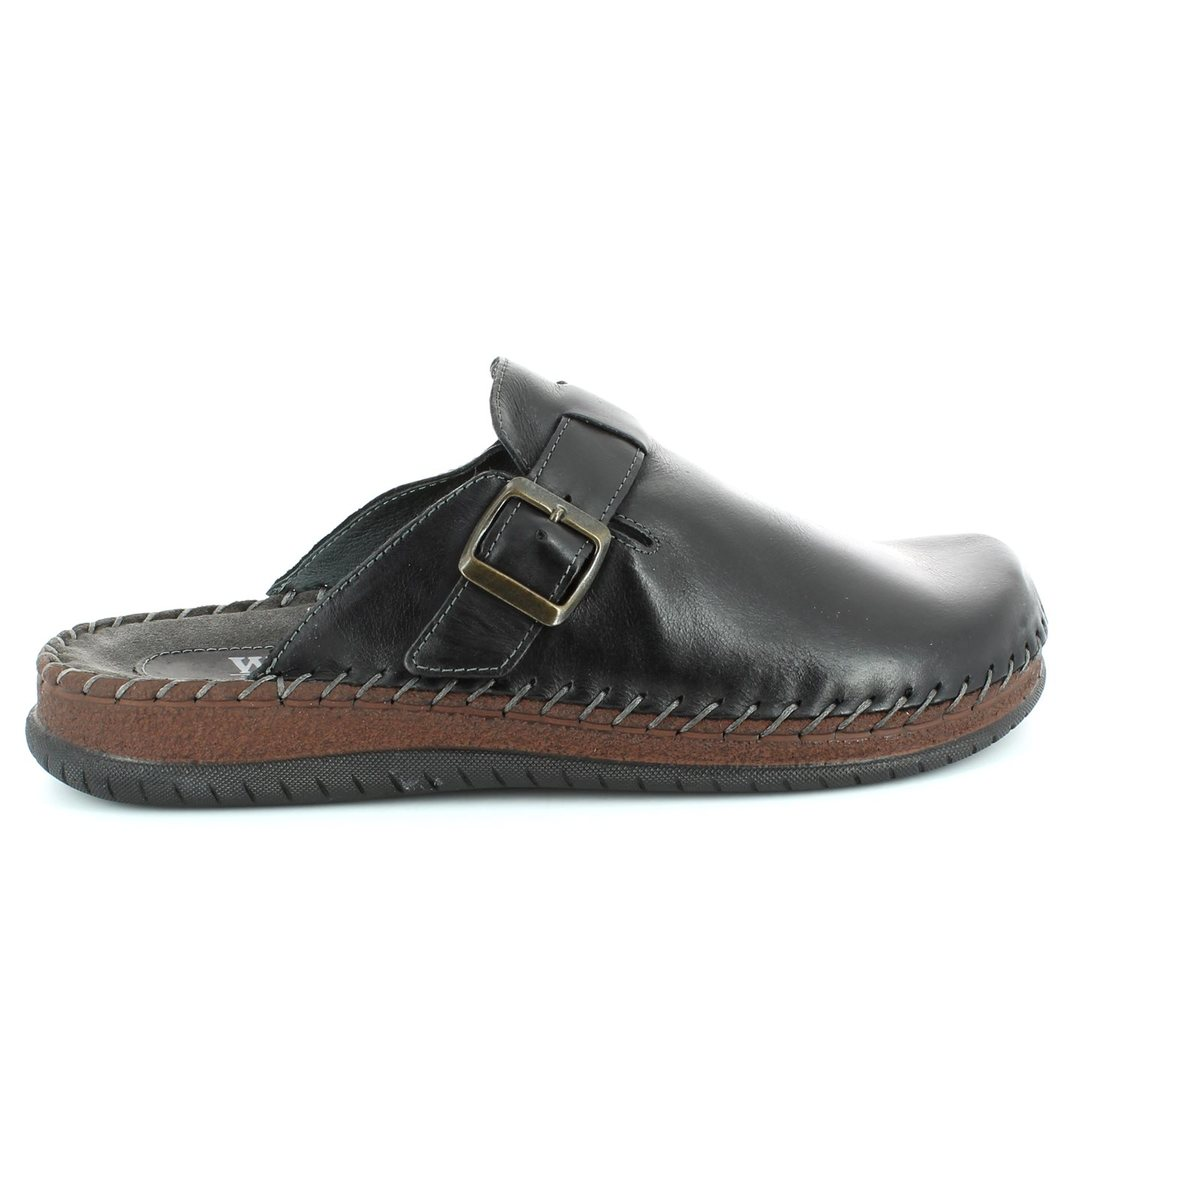 walk in the city conform 9289 19103 black waxy house shoe